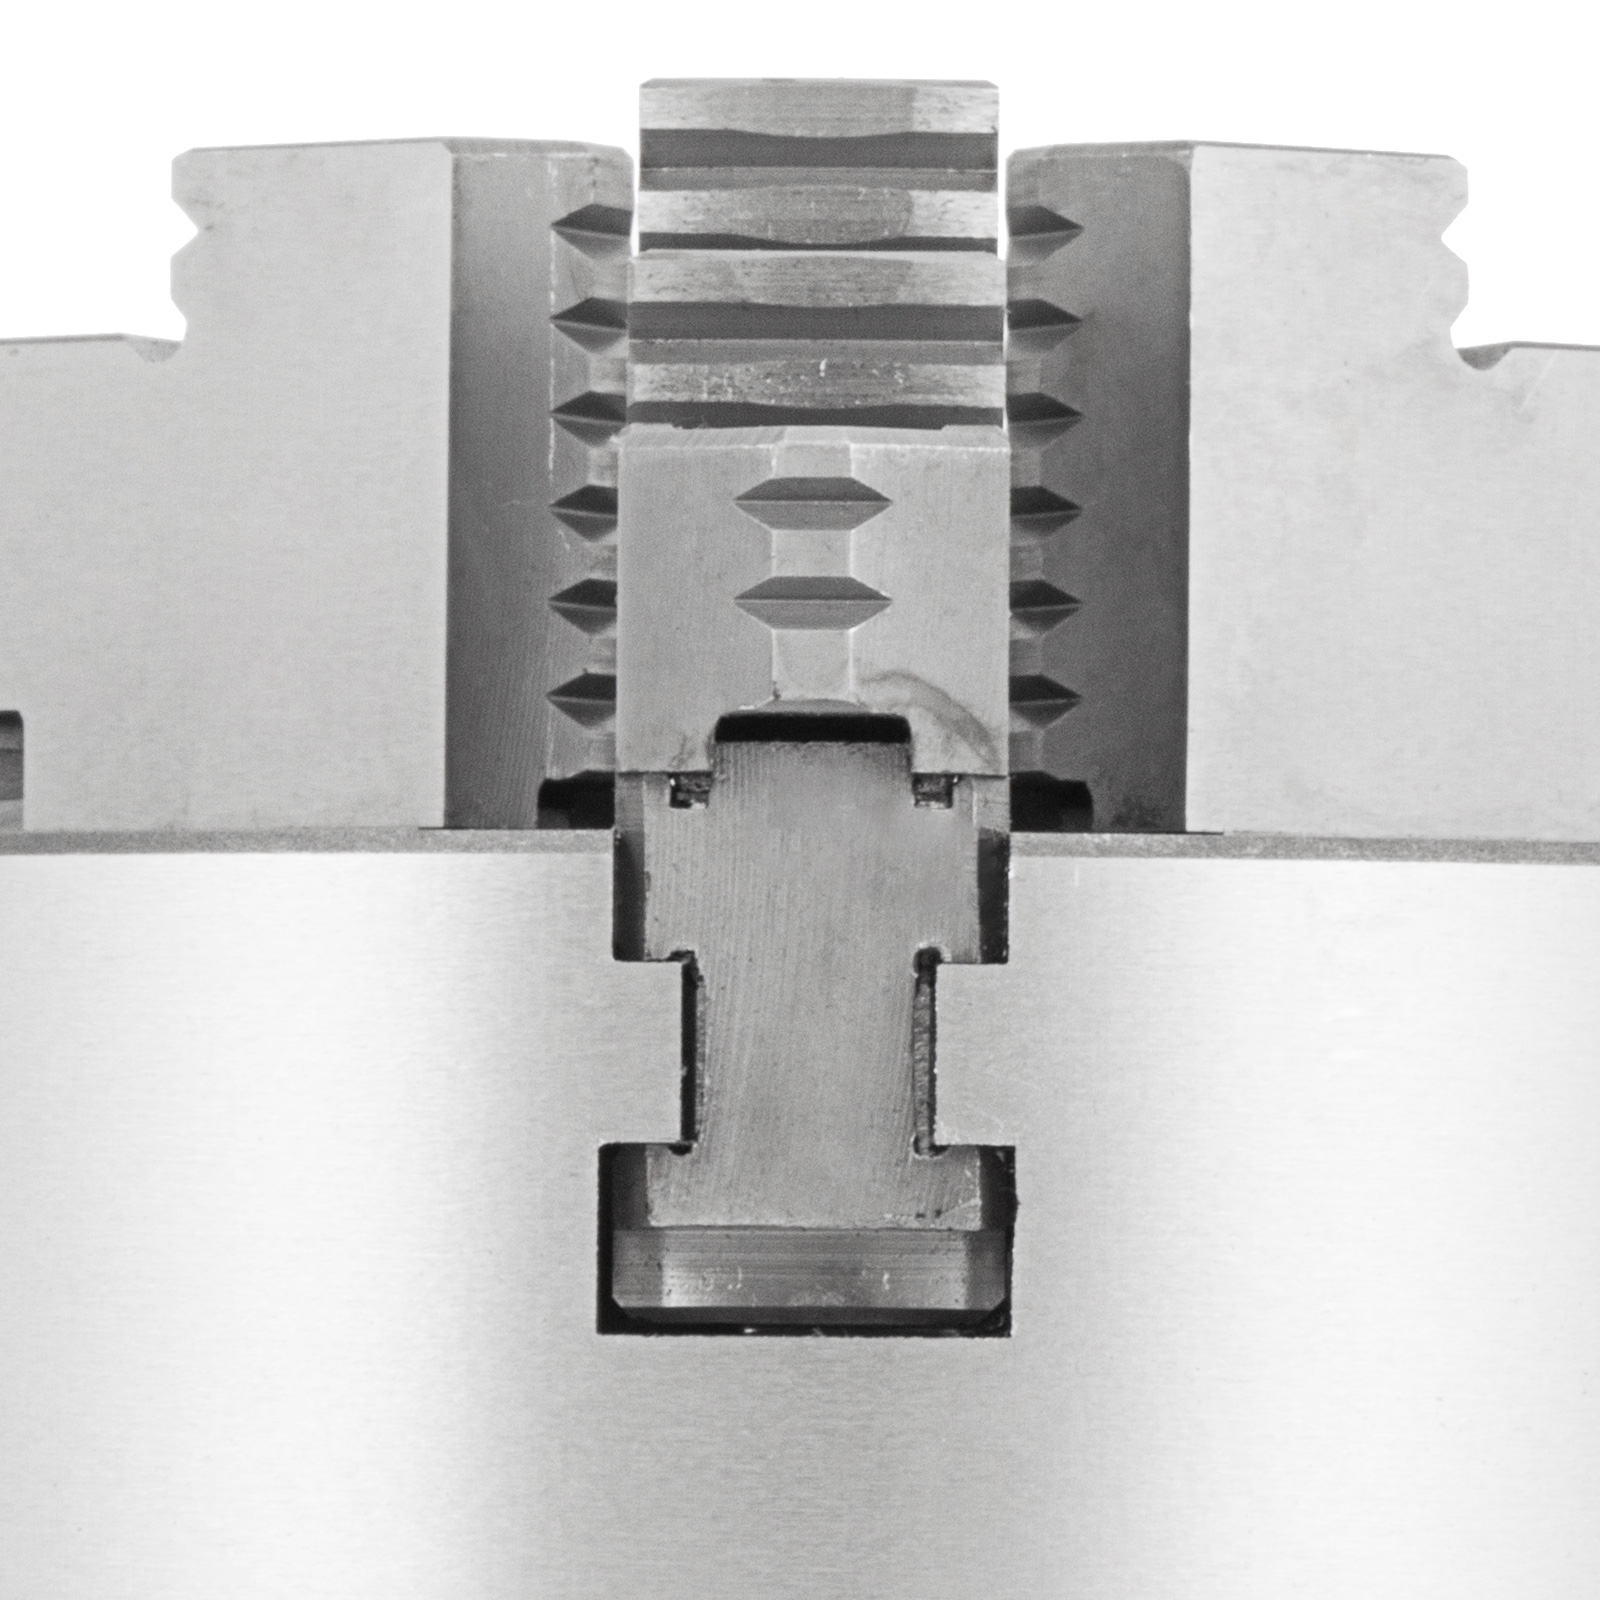 160-400mm-3-Jaw-Metal-Lathe-Chuck-Reversible-Independent-Key-Handle thumbnail 48